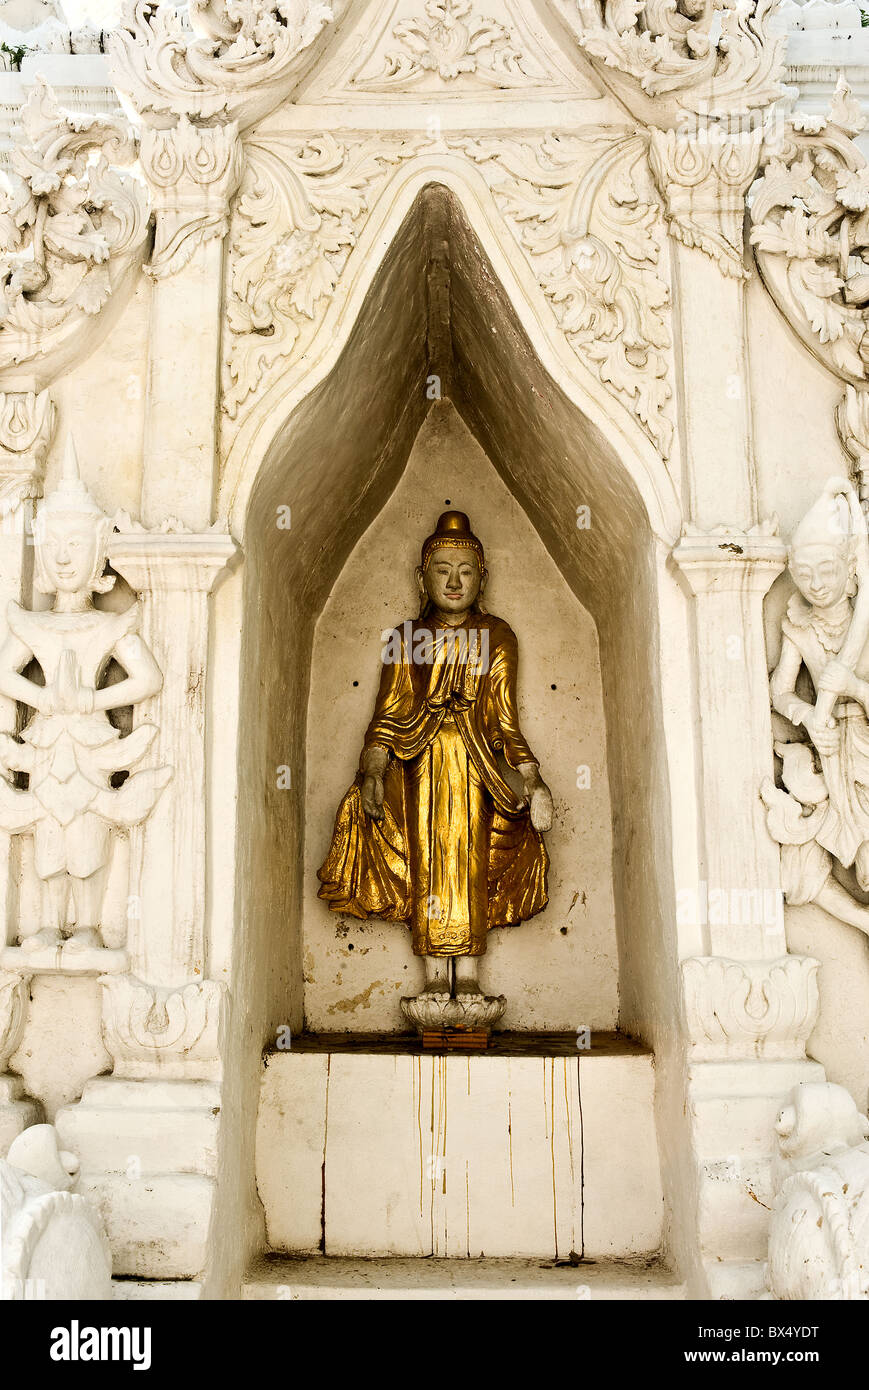 A statue in a recess in a wall at Wat Buppharam in Chiang Mai in Thailand Stock Photo